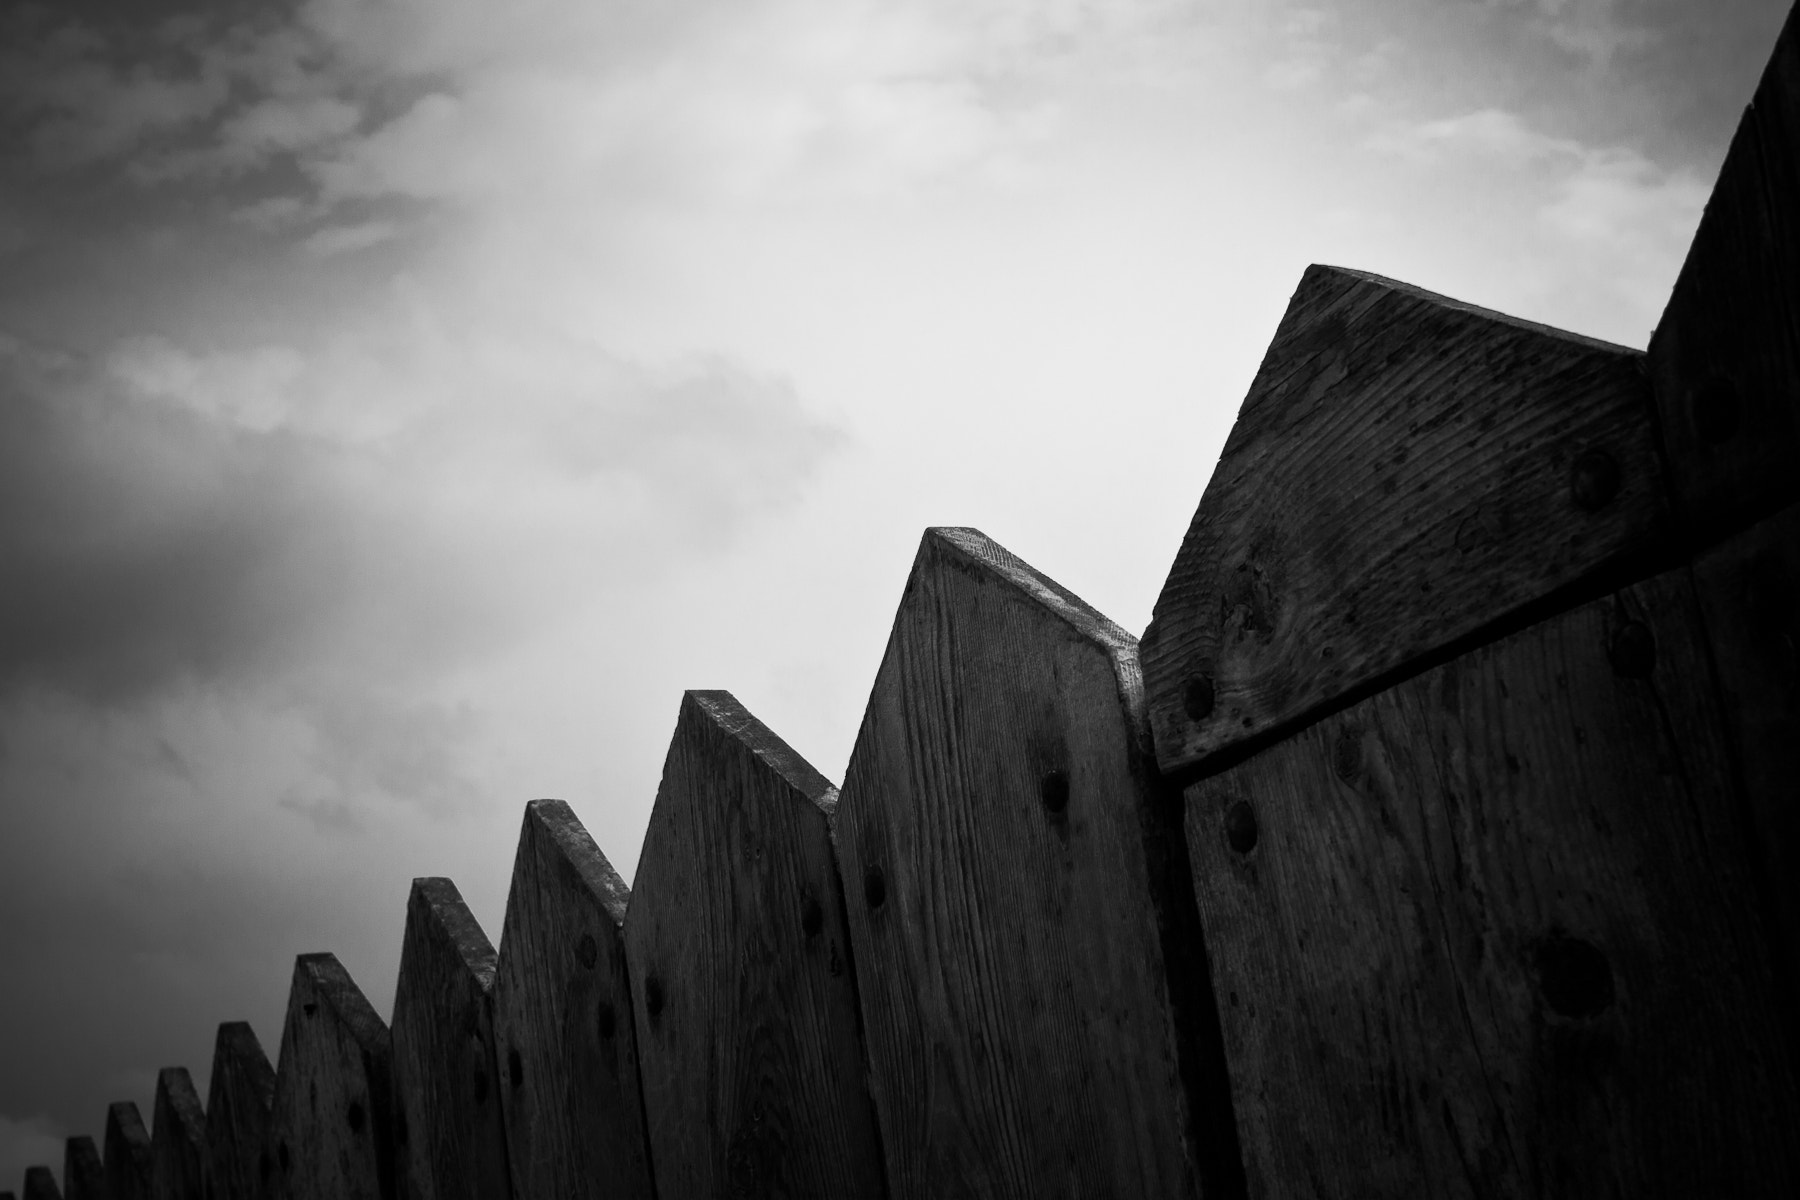 Photograph Wooden Guards by Neil Farrugia on 500px